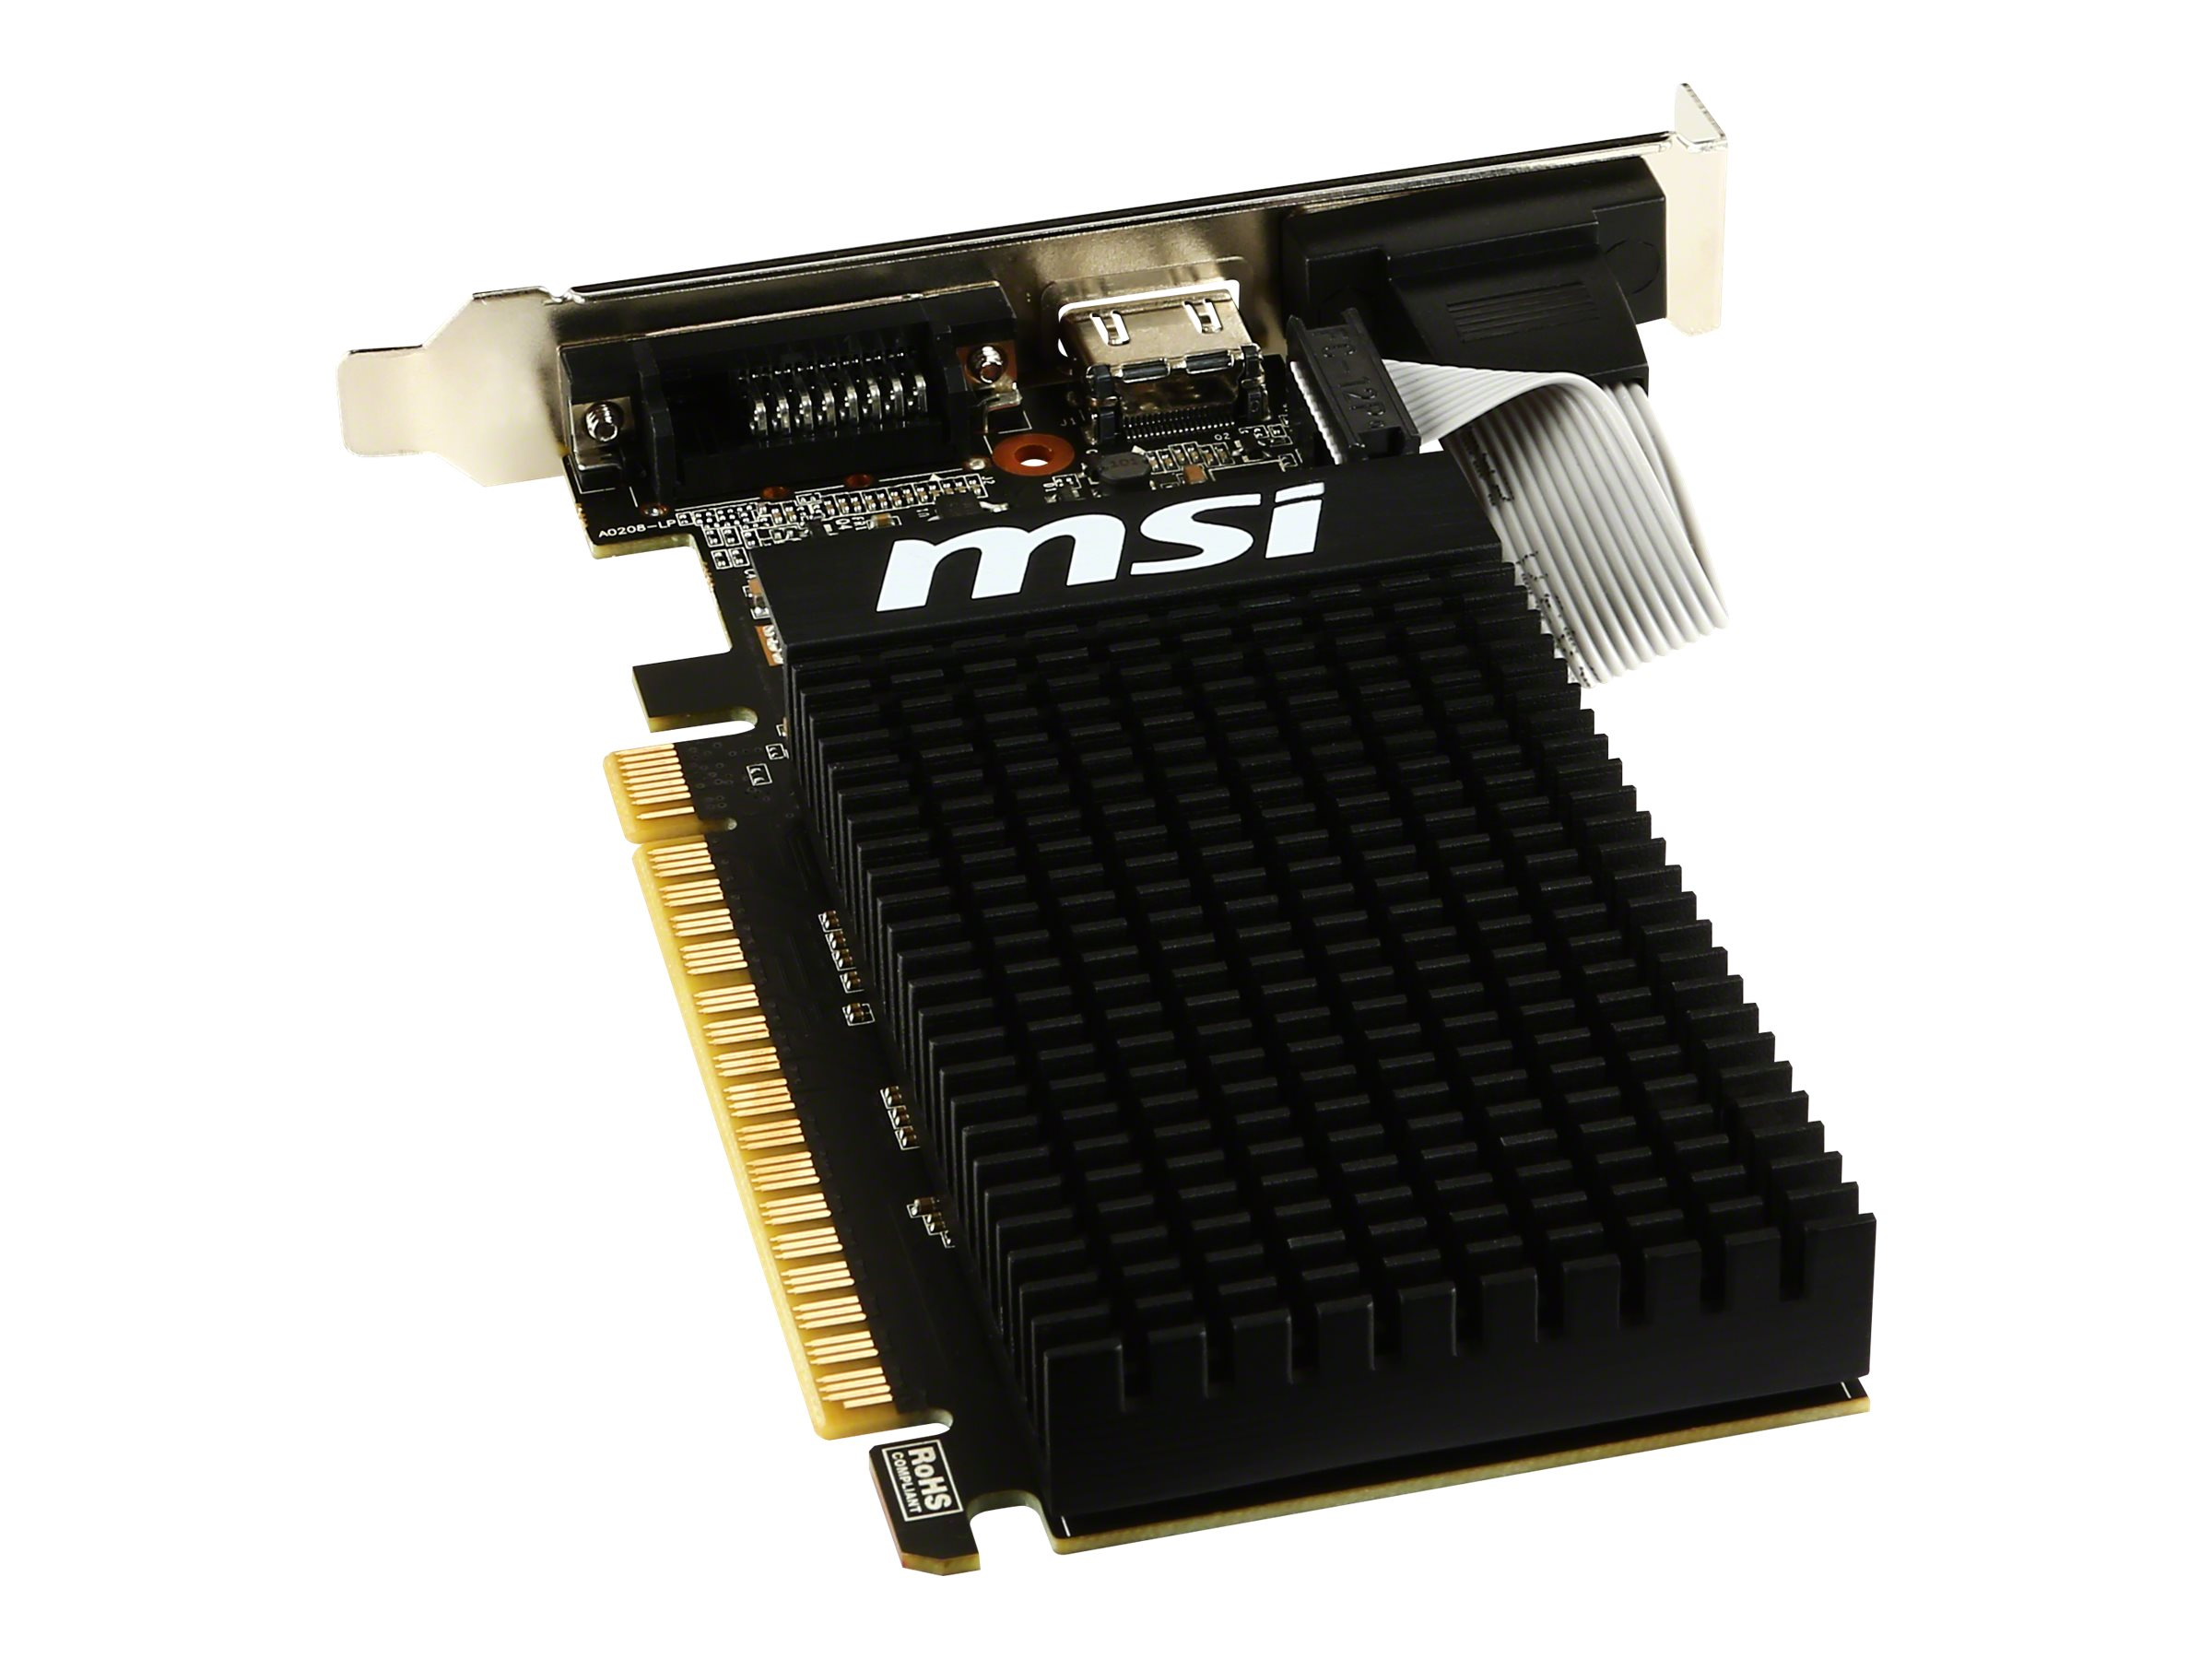 Microstar GeForce GT 710 PCIe 2.0 x8 Graphics Card, 1GB DDR3